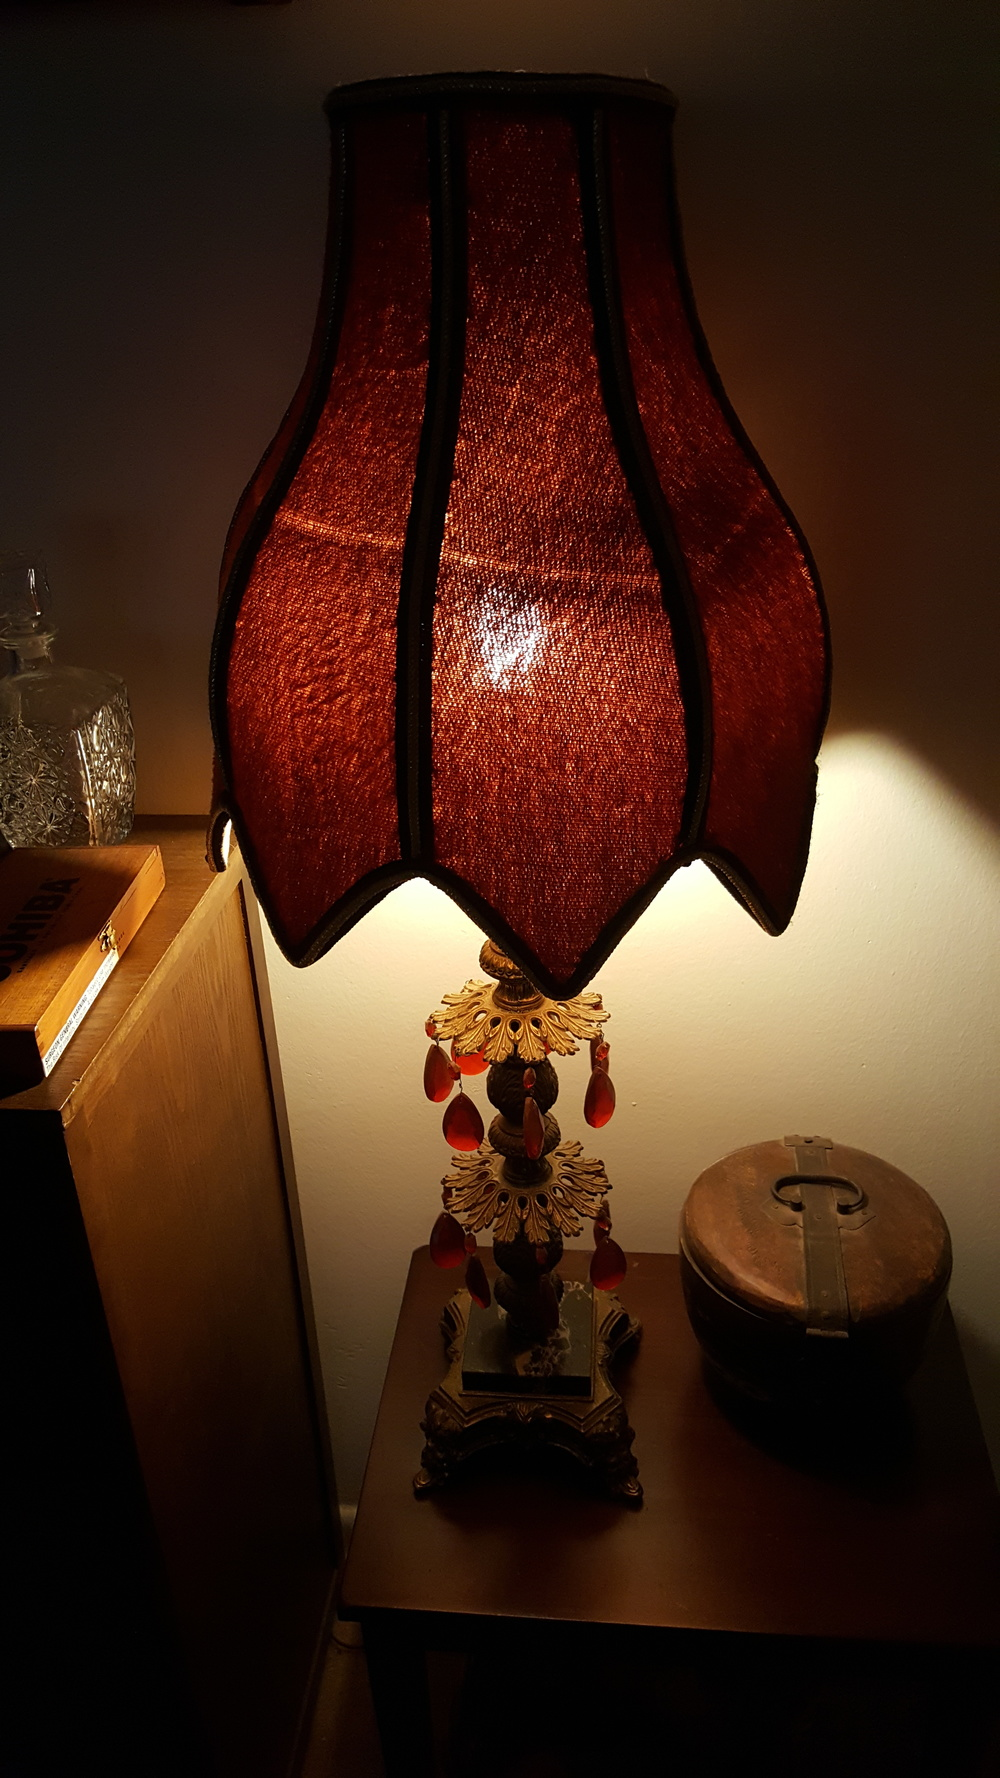 Tony's Grandma's brothel lamp talked about on many episodes.